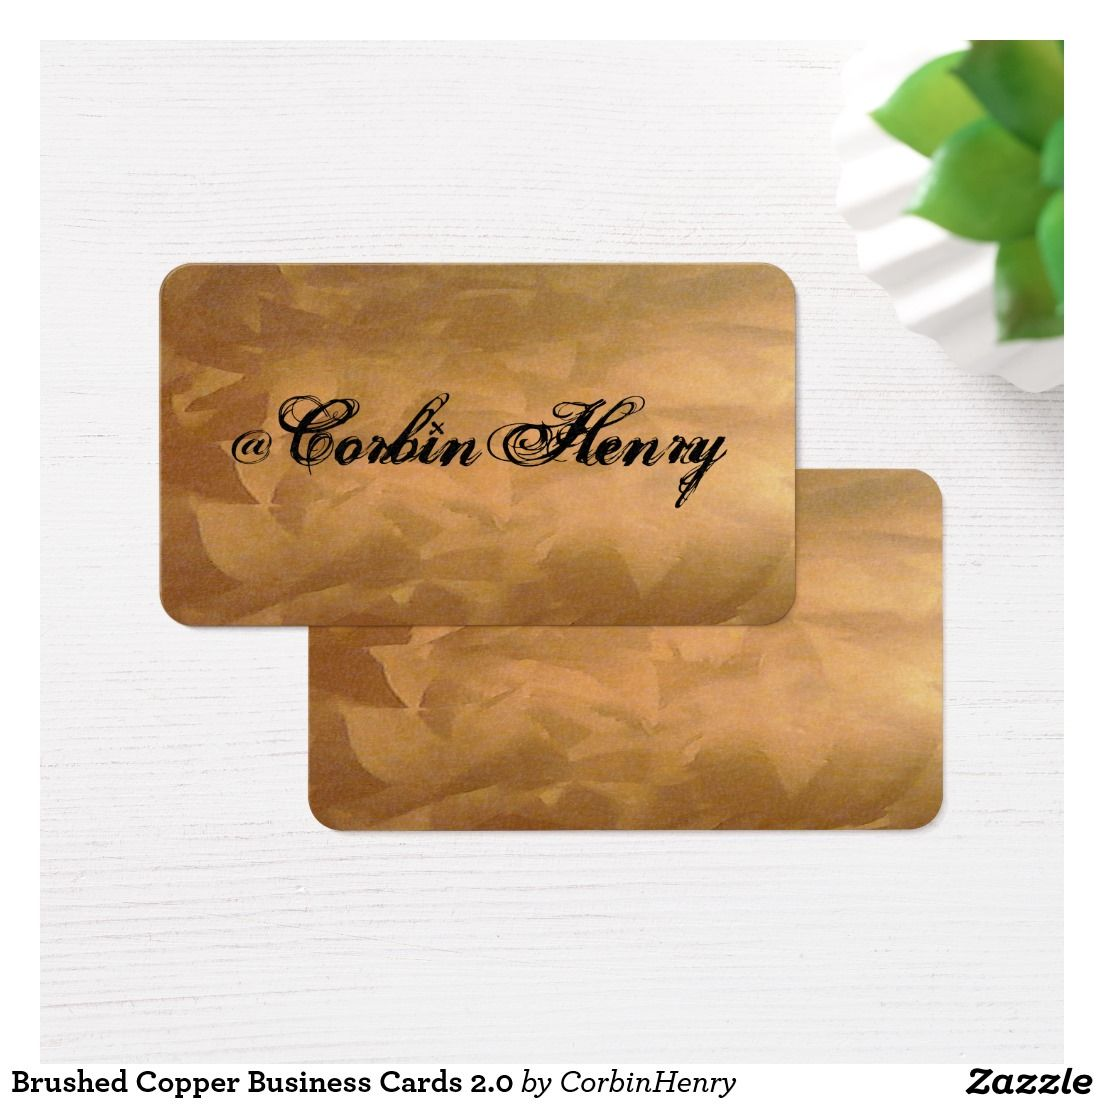 Brushed Copper Business Cards 2.0 Social Media Business Cards 2.0 ...